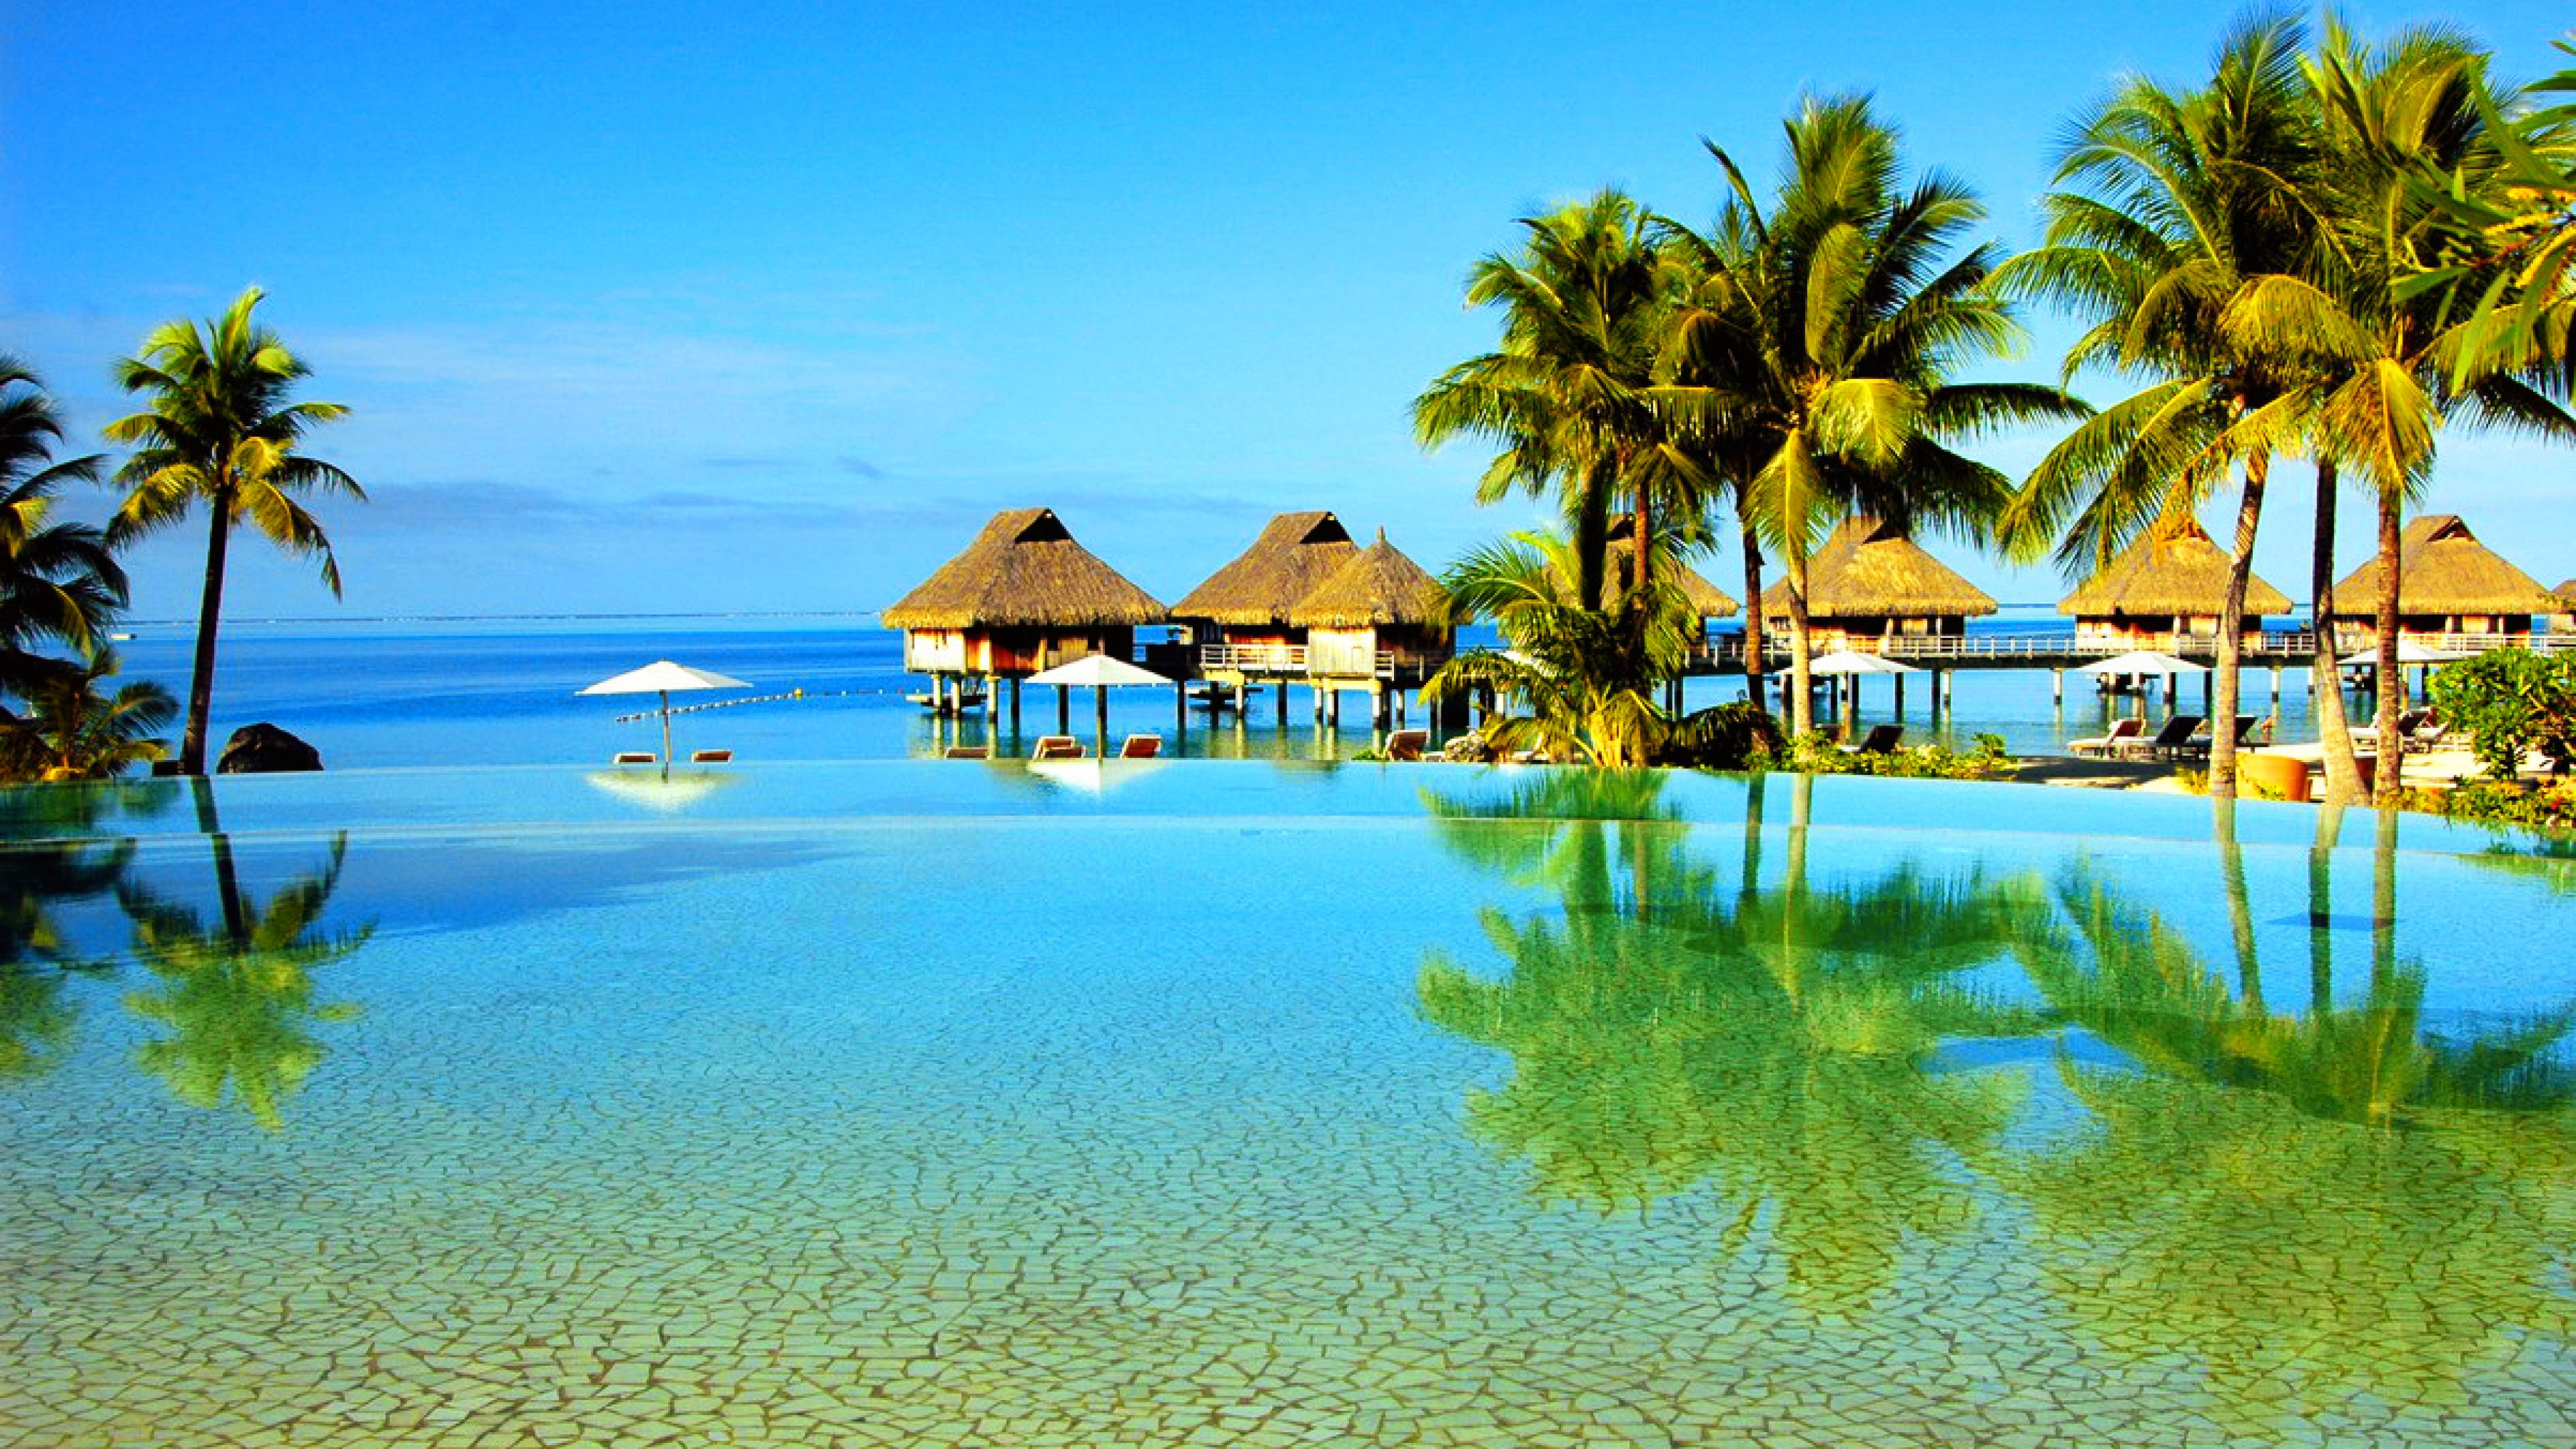 Exotic Beach Wallpaper Awesome Images utr752lt Yoanu 3840x2160